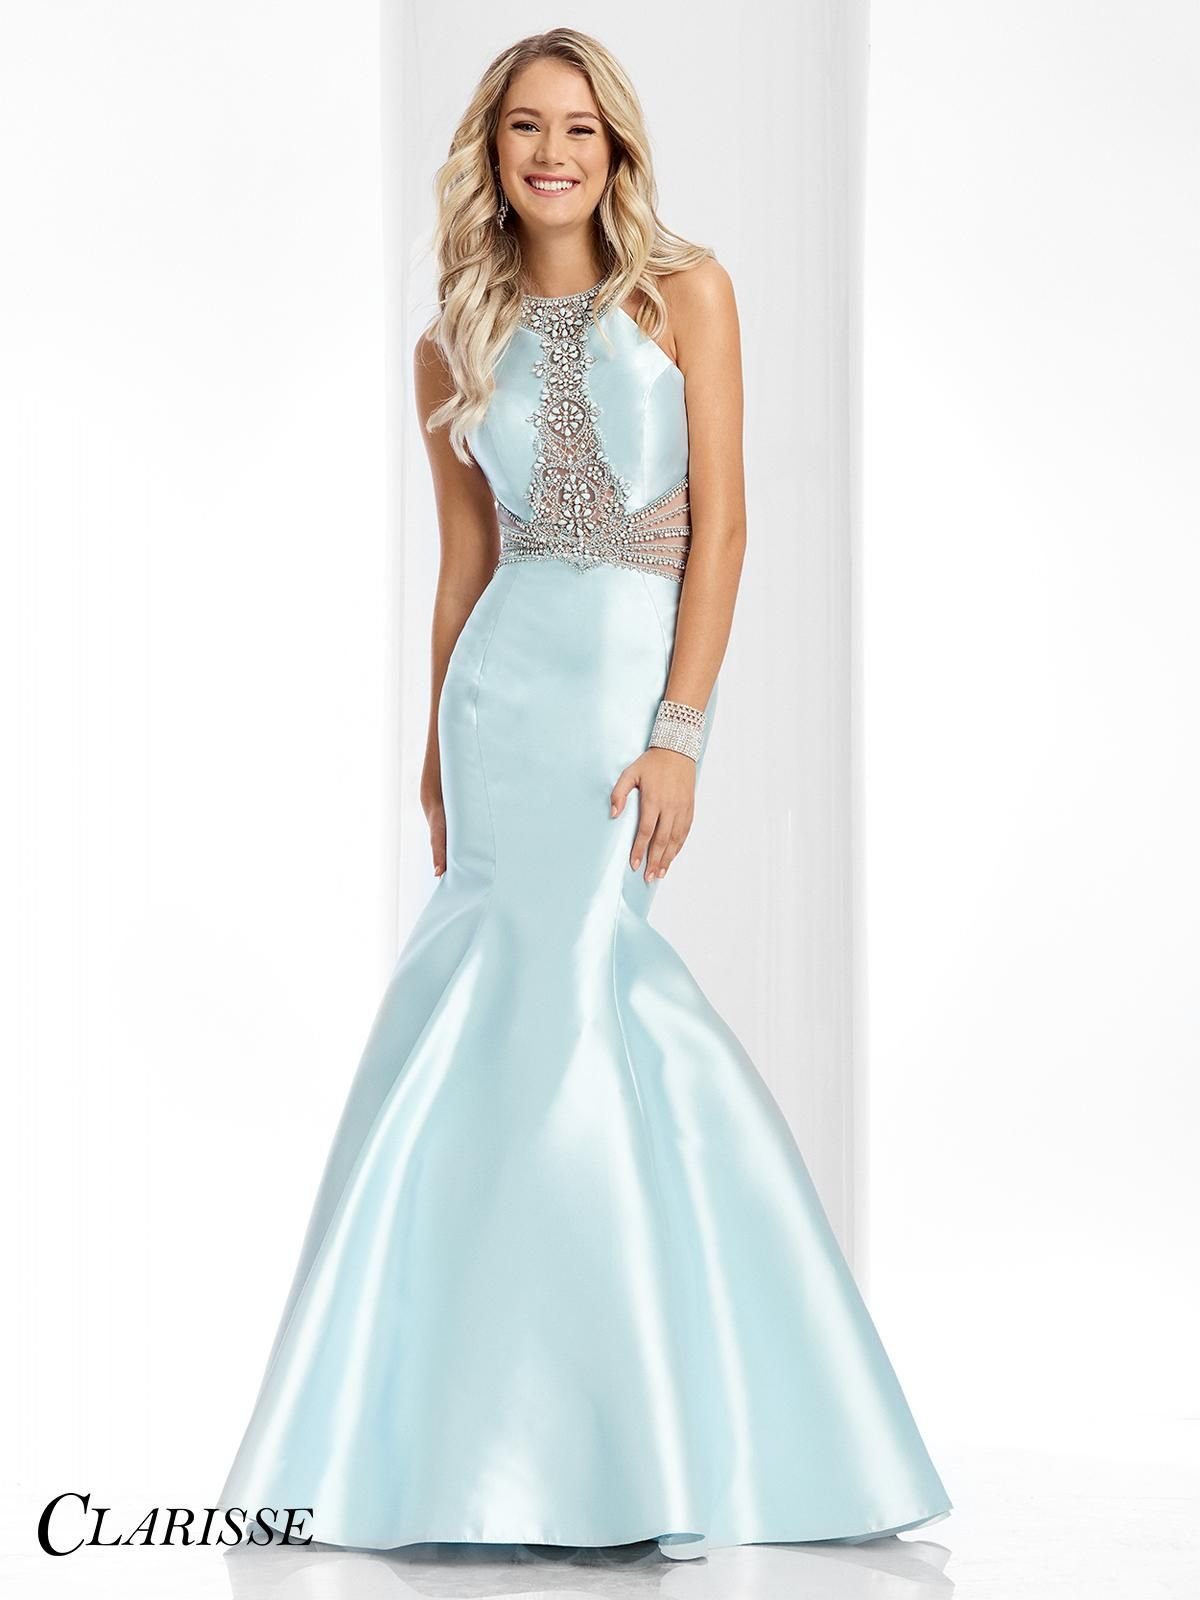 Tolle Make A Prom Dress Galerie - Brautkleider Ideen - cashingy.info